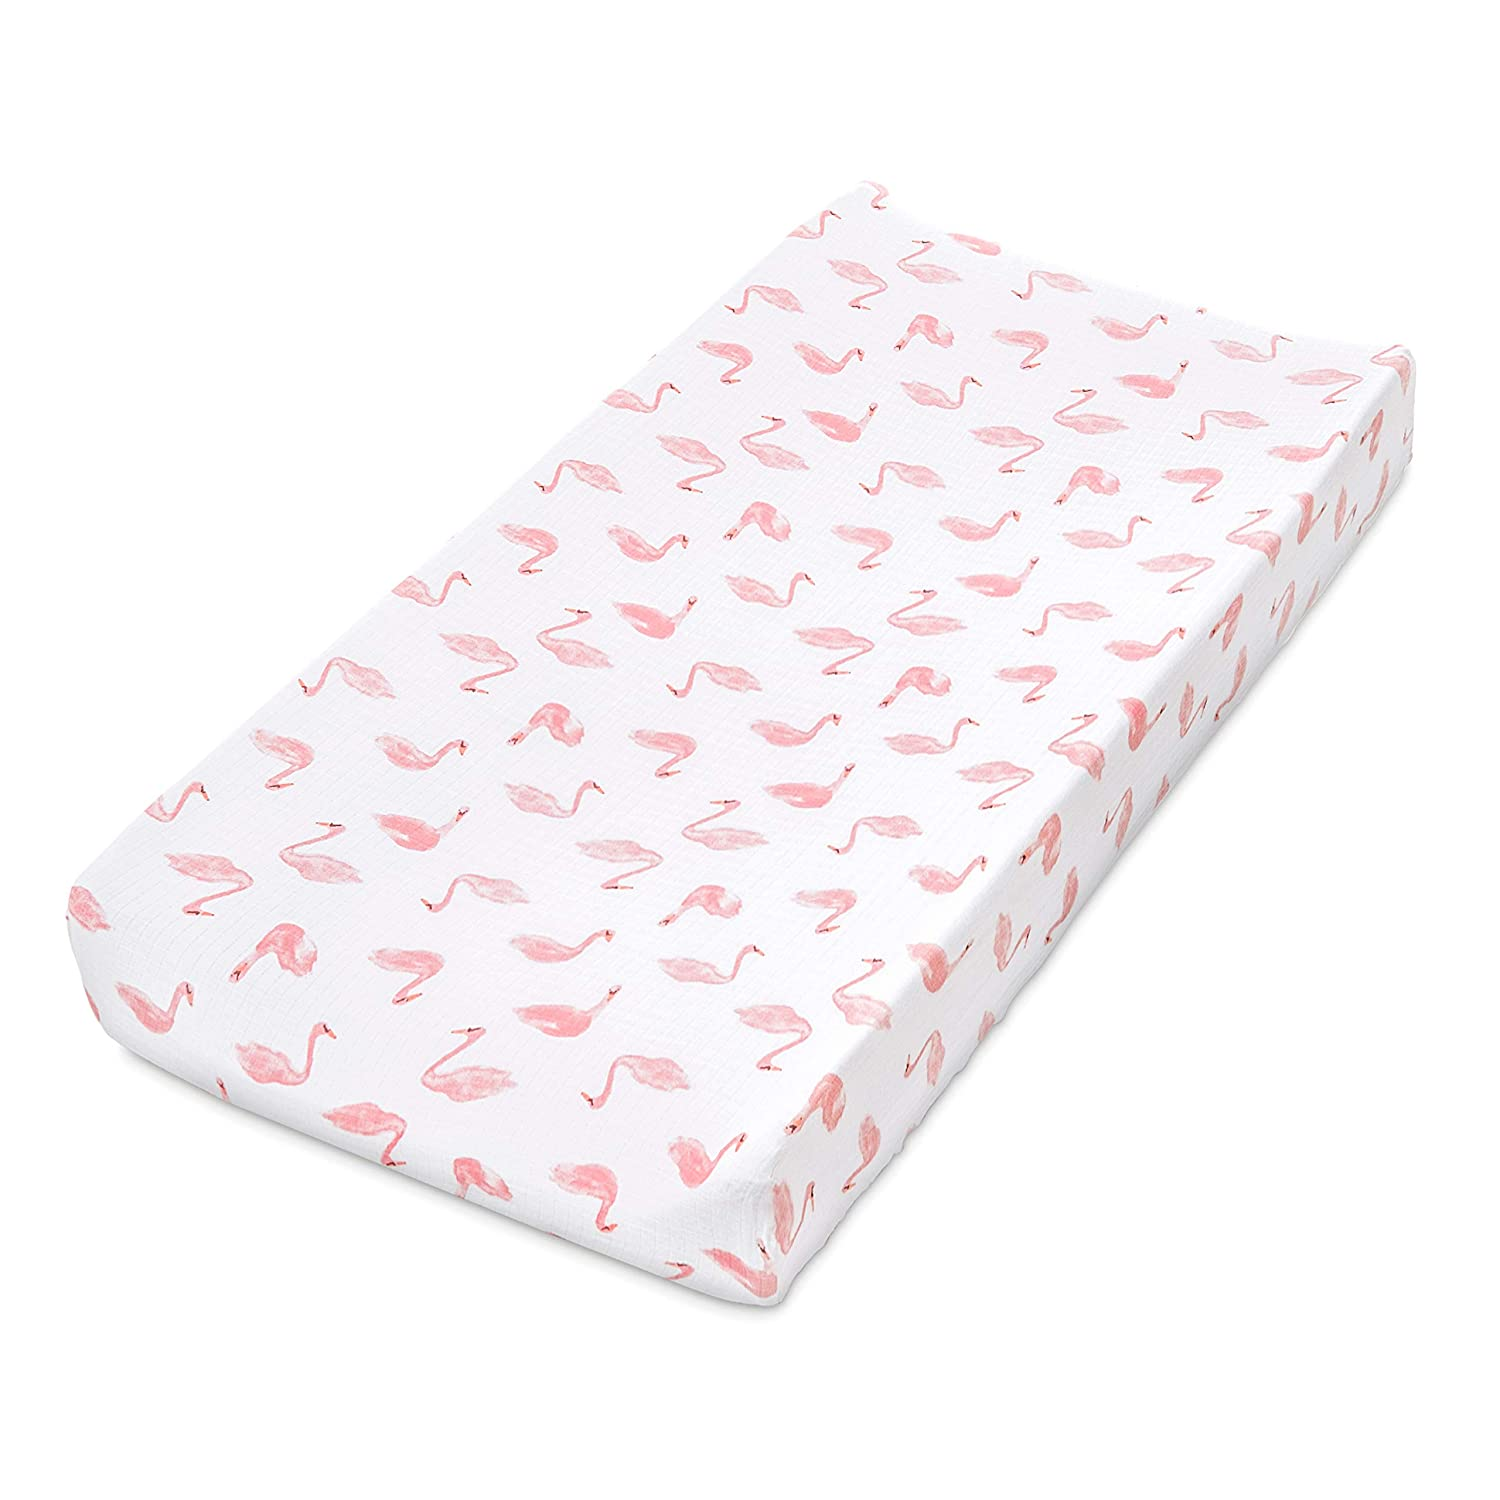 aden by aden + anais Classic Changing Pad Cover, 100% Cotton Muslin, Super Soft, Breathable, Tailored Snug Fit, Single, Briar Rose - Swans